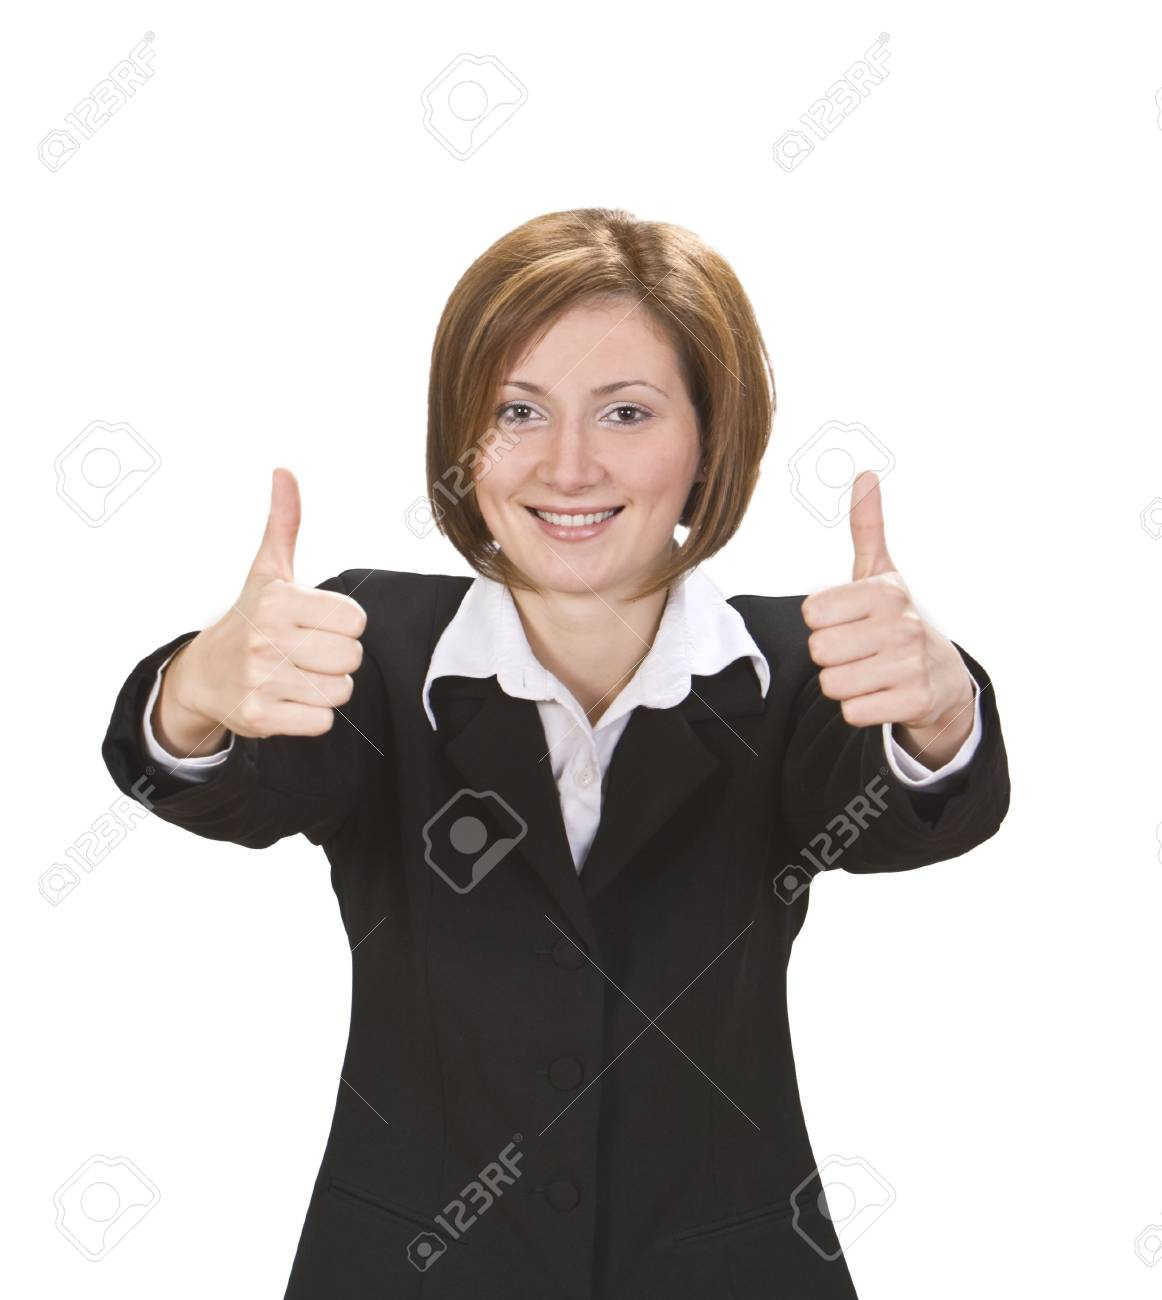 Happy businesswoman with thumbs-up isolated against a white background. Stock Photo - 3837224